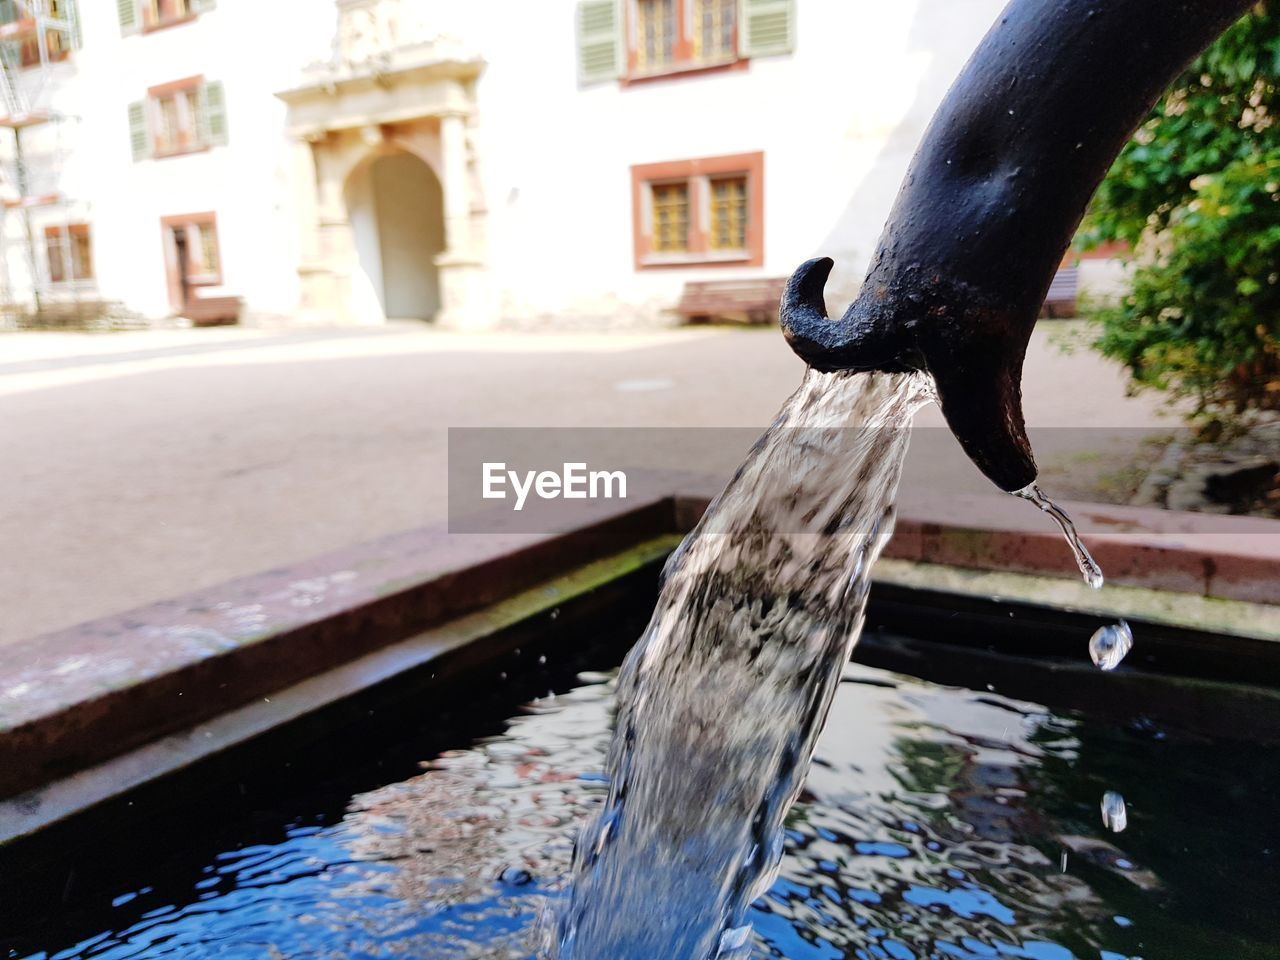 water, fountain, drinking fountain, architecture, day, motion, outdoors, no people, building exterior, running water, waterfront, built structure, tap, dripping, close-up, nature, animal themes